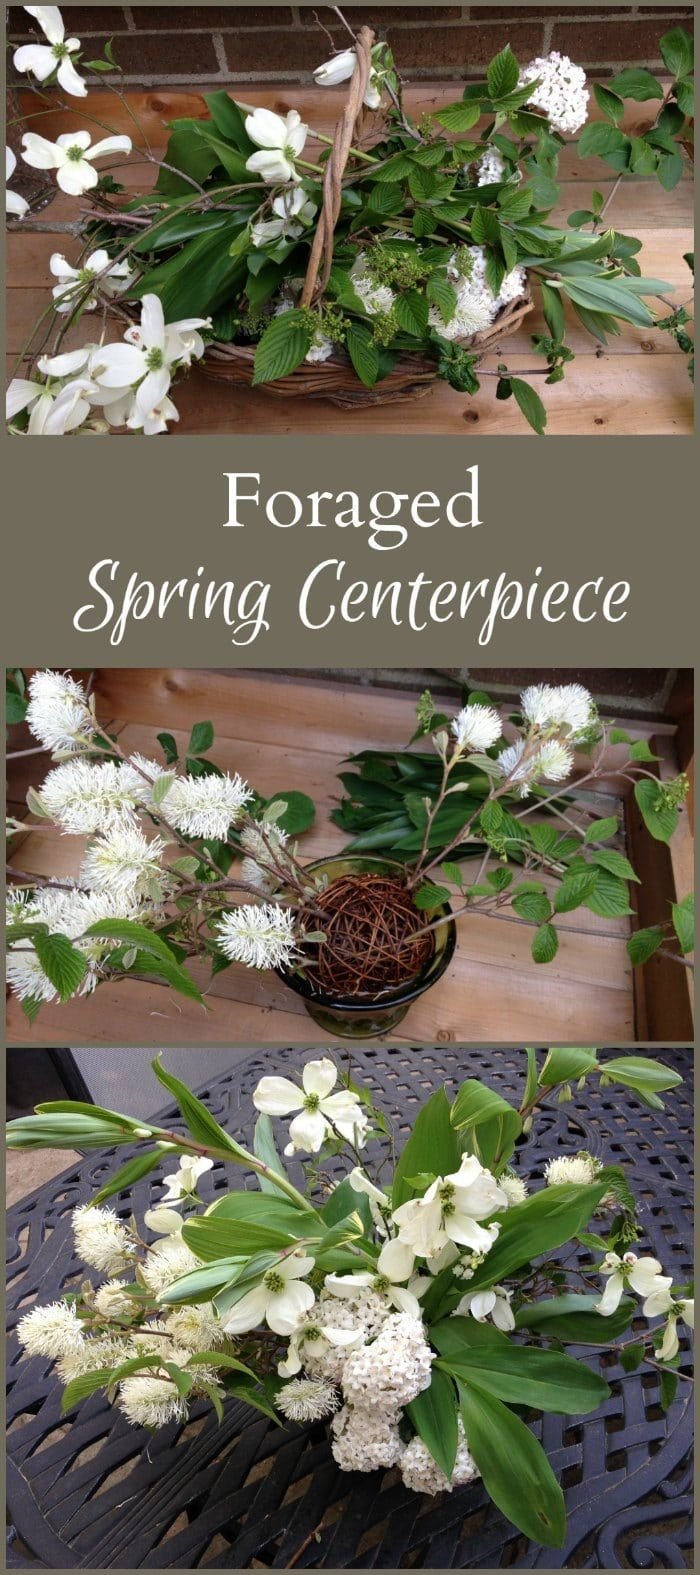 Learn how to make a foraged spring centerpiece from plants blooming around your home. An easy and inexpensive way to bring the beauty of spring indoors. #springflowers #spring #flowers  #dogwood #lilyofthevalley #magnolia #viburnum #flowerarrangement #centerpiece #forage #fothergilla